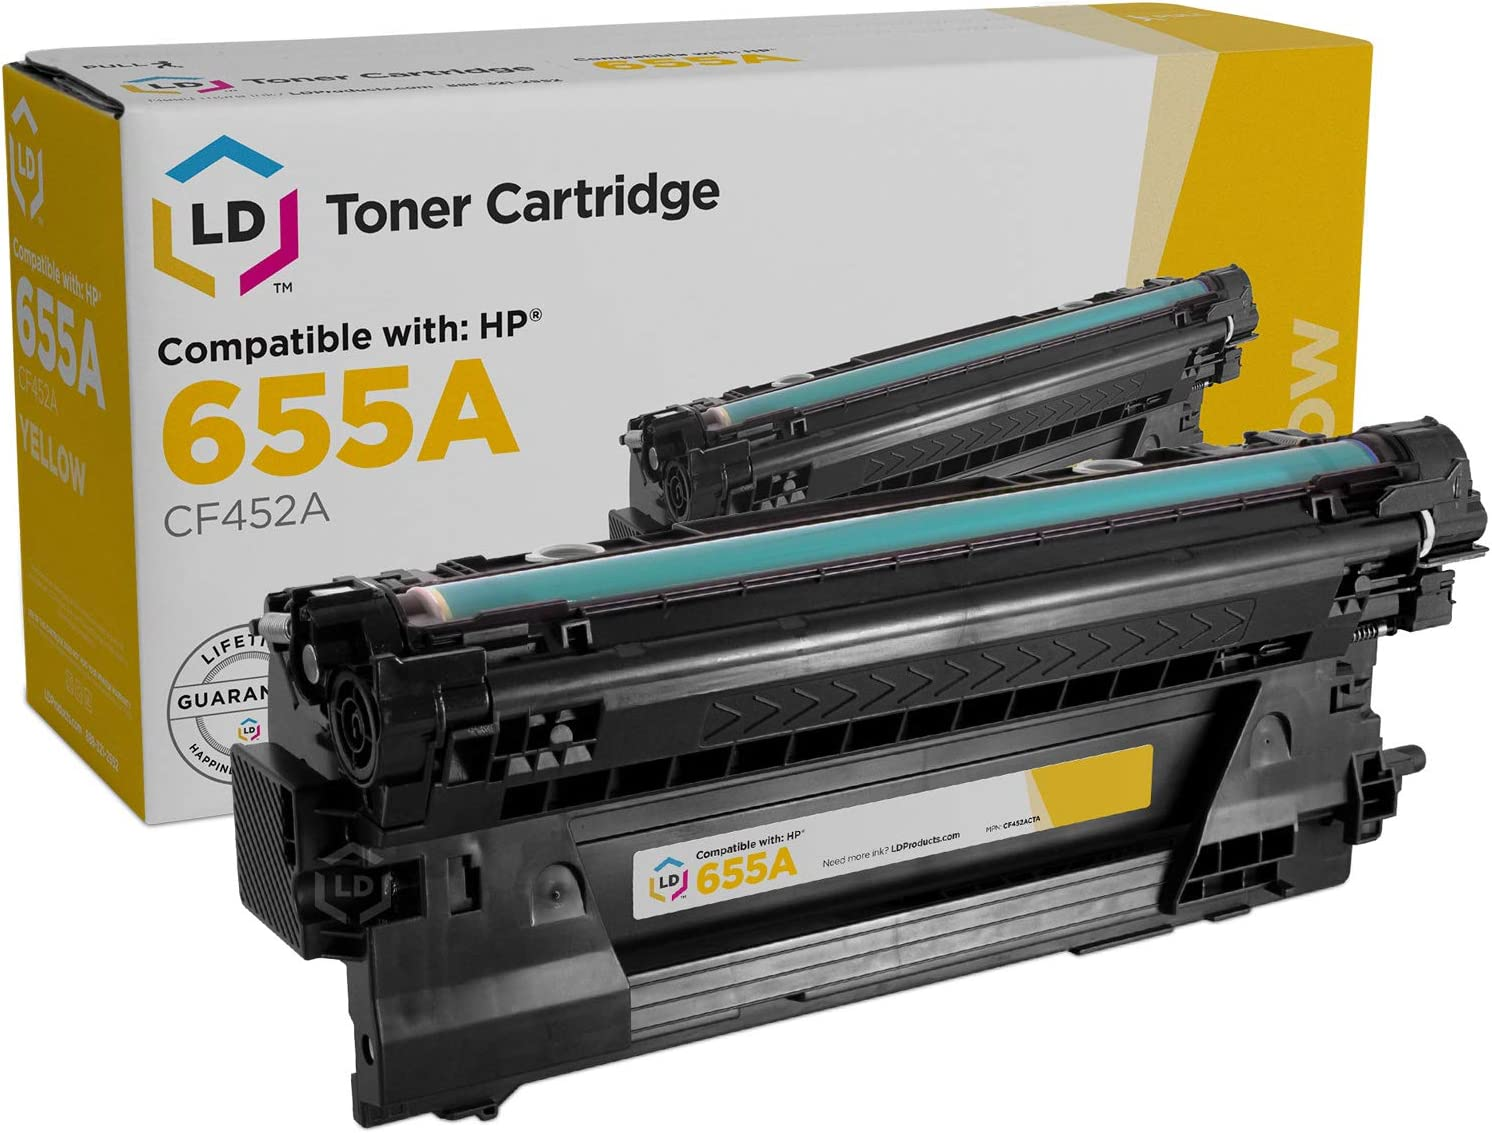 LD Compatible Toner Cartridge Replacement for HP 655A CF452A (Yellow)